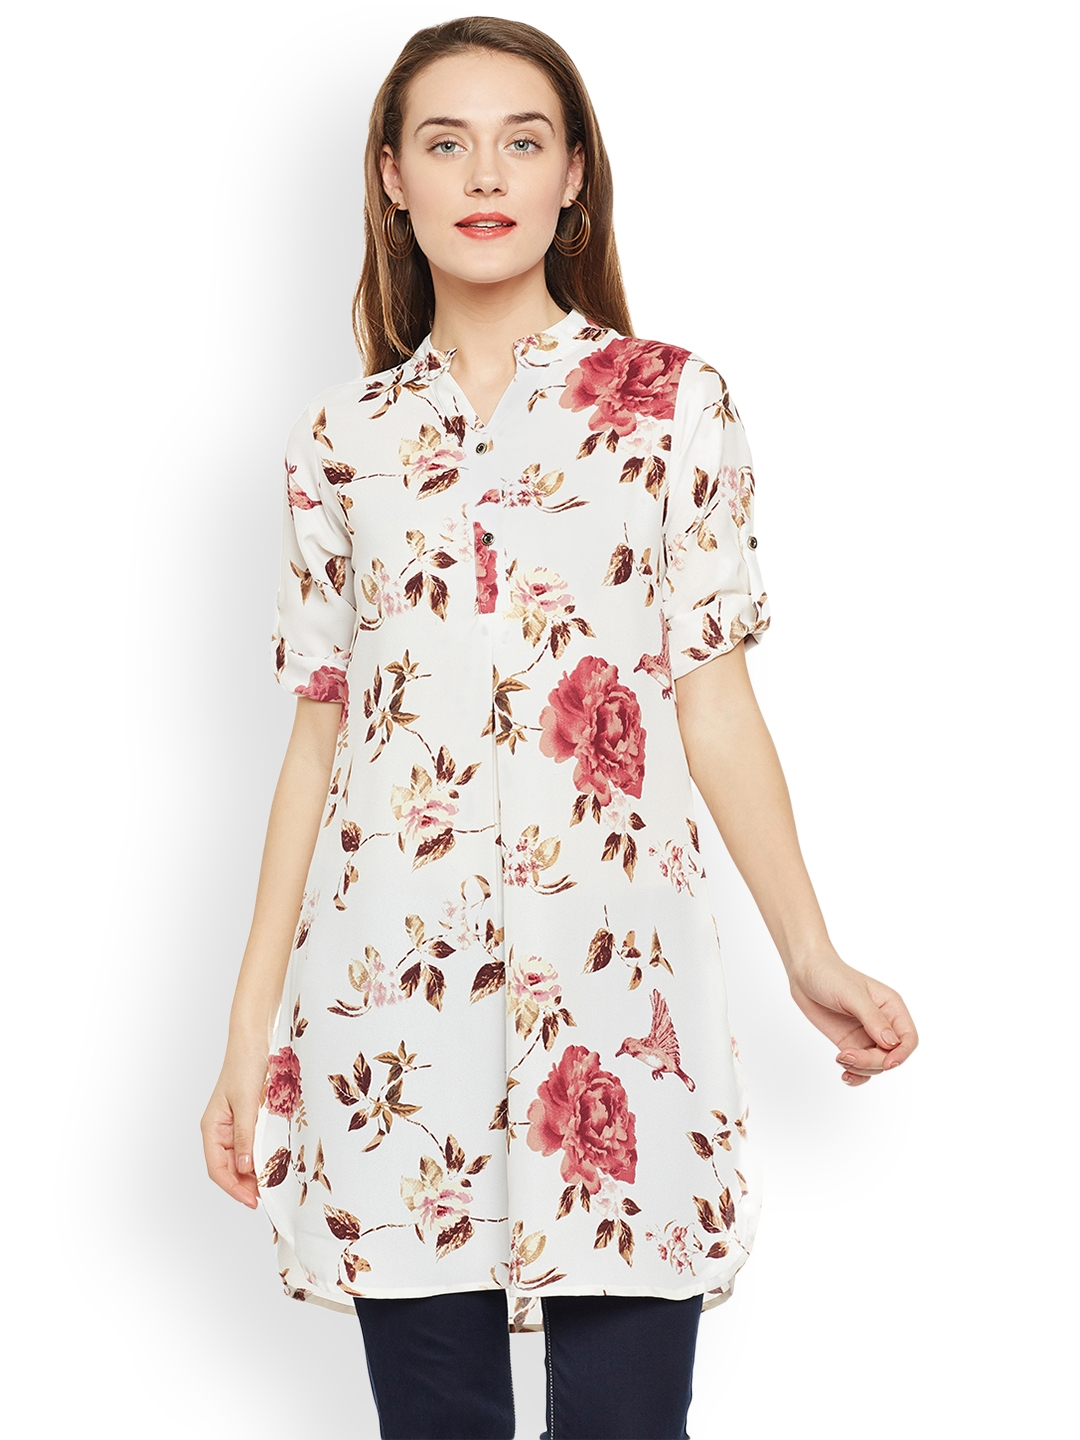 7a0c8246777 Buy Ruhaans Off White Printed Tunic - Tunics for Women 2274140   Myntra